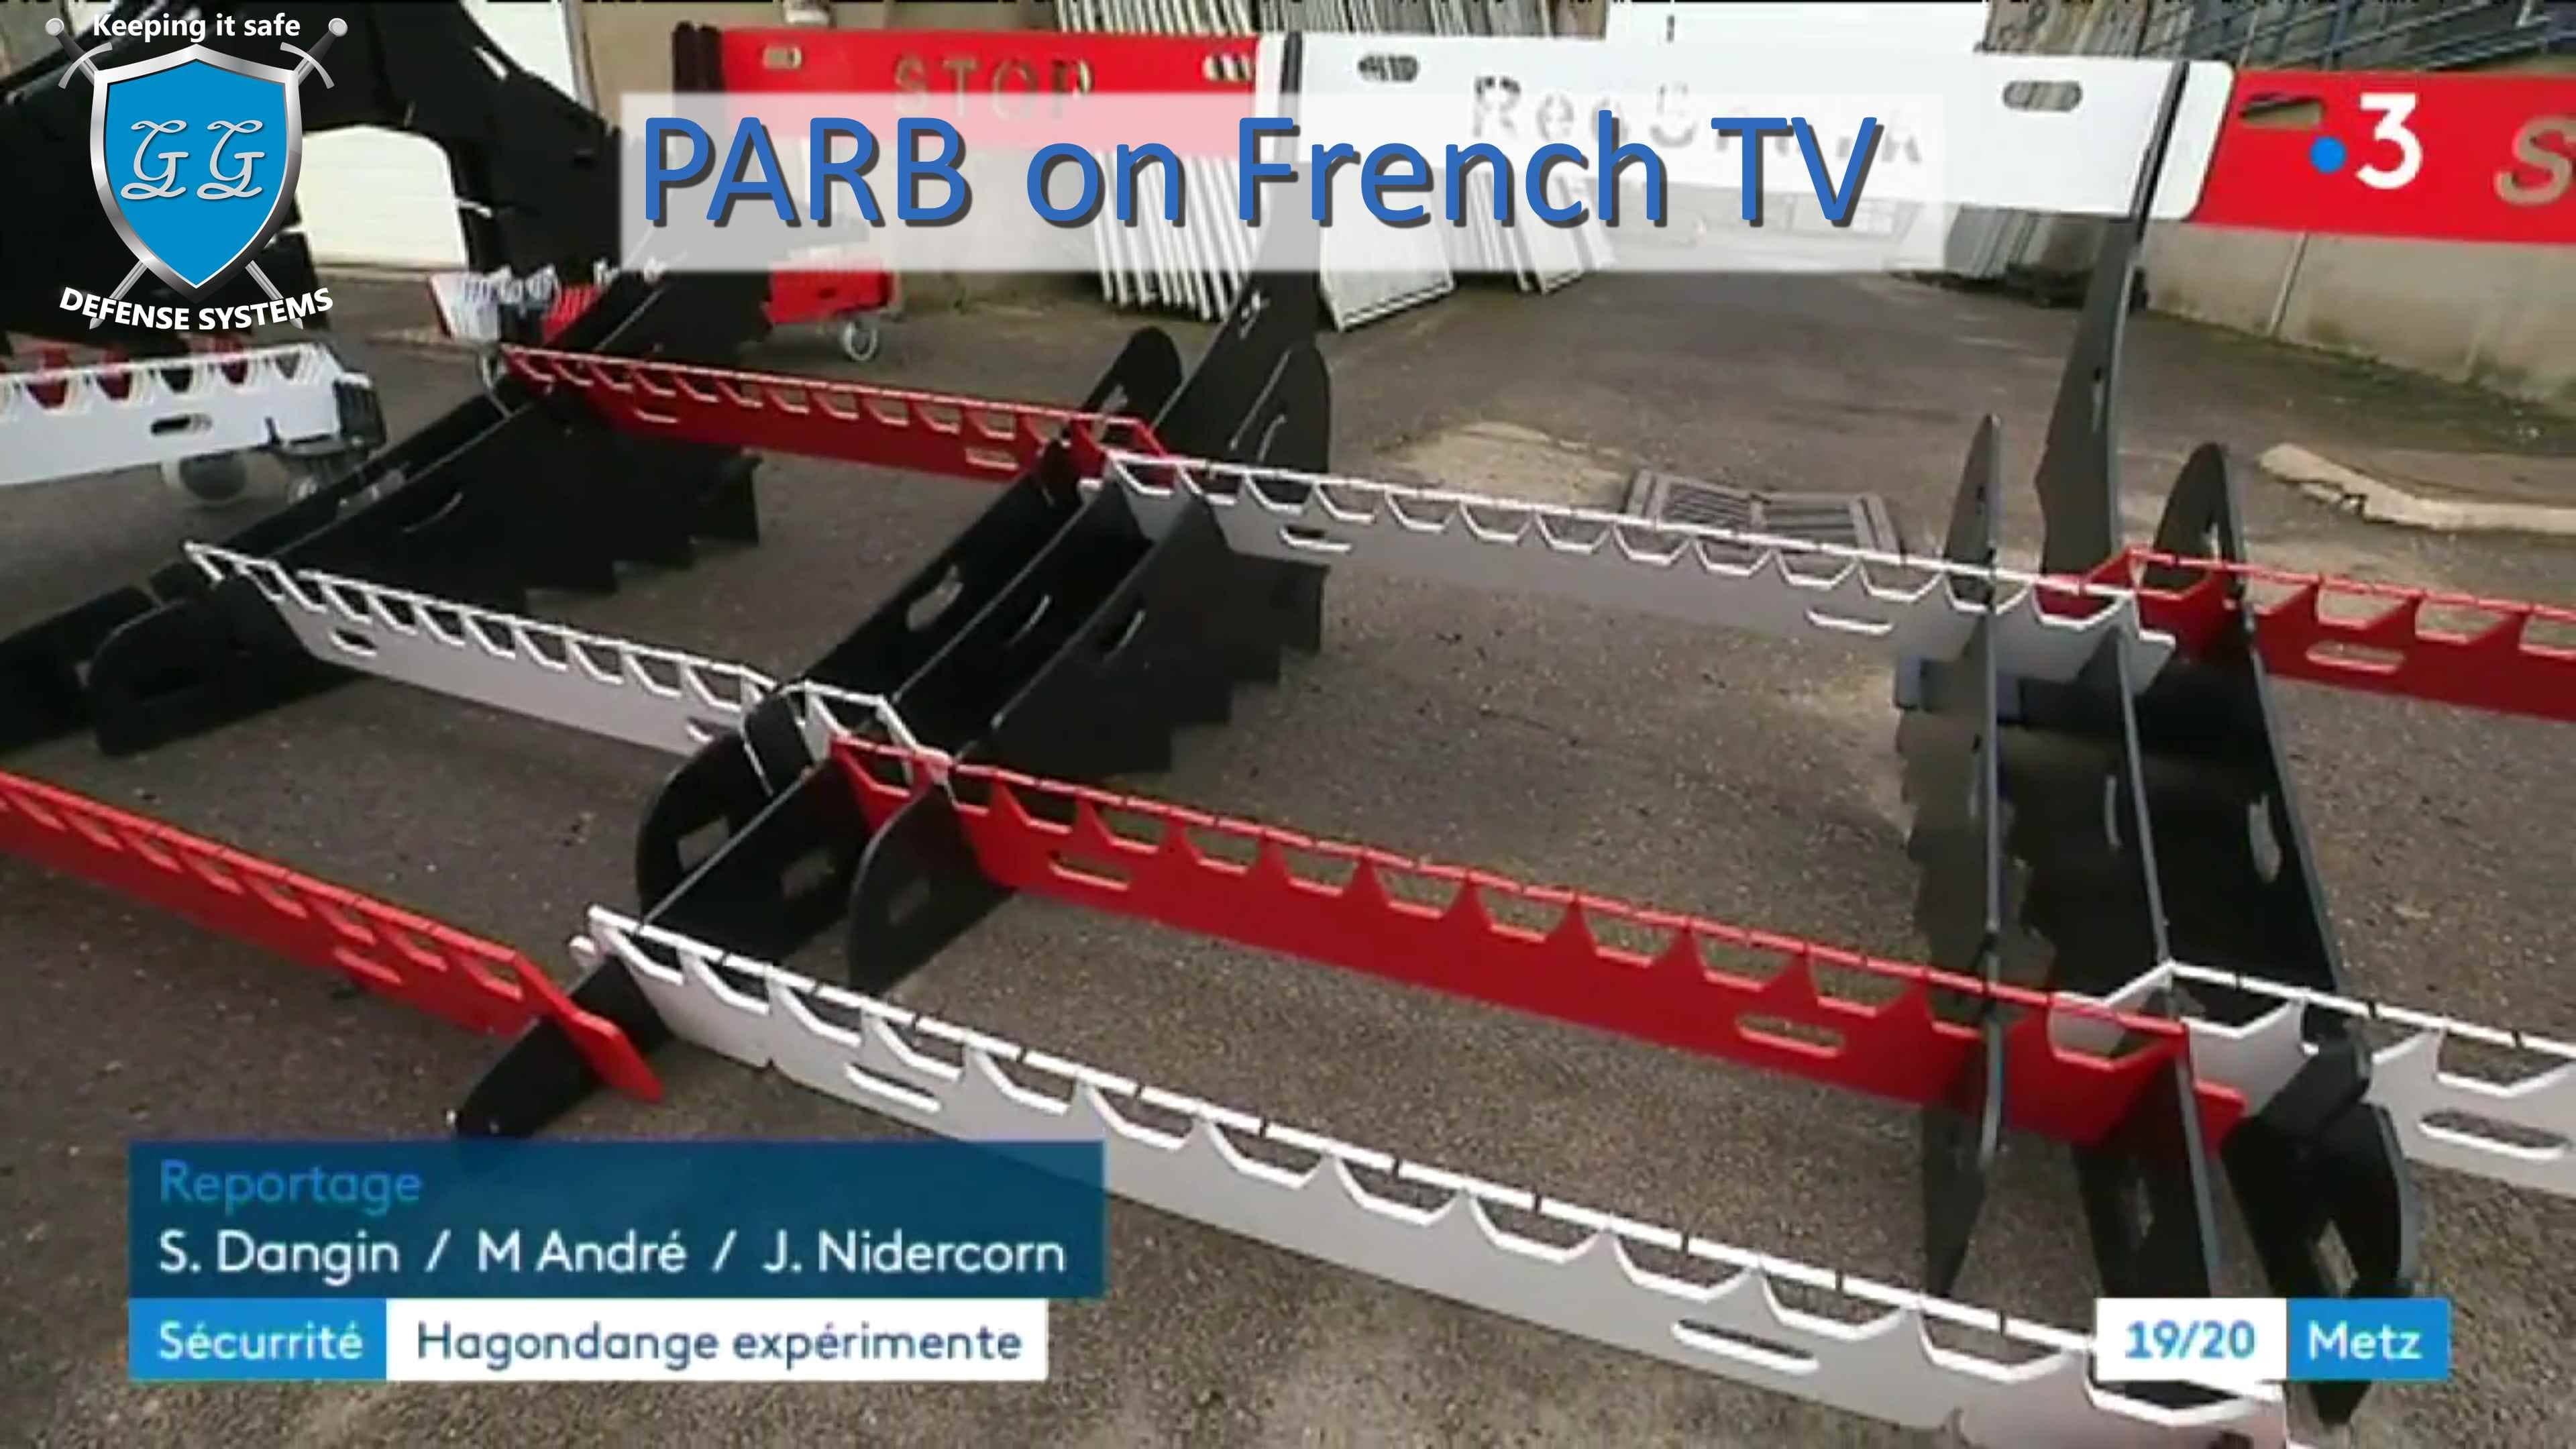 PARB-on-French-TV